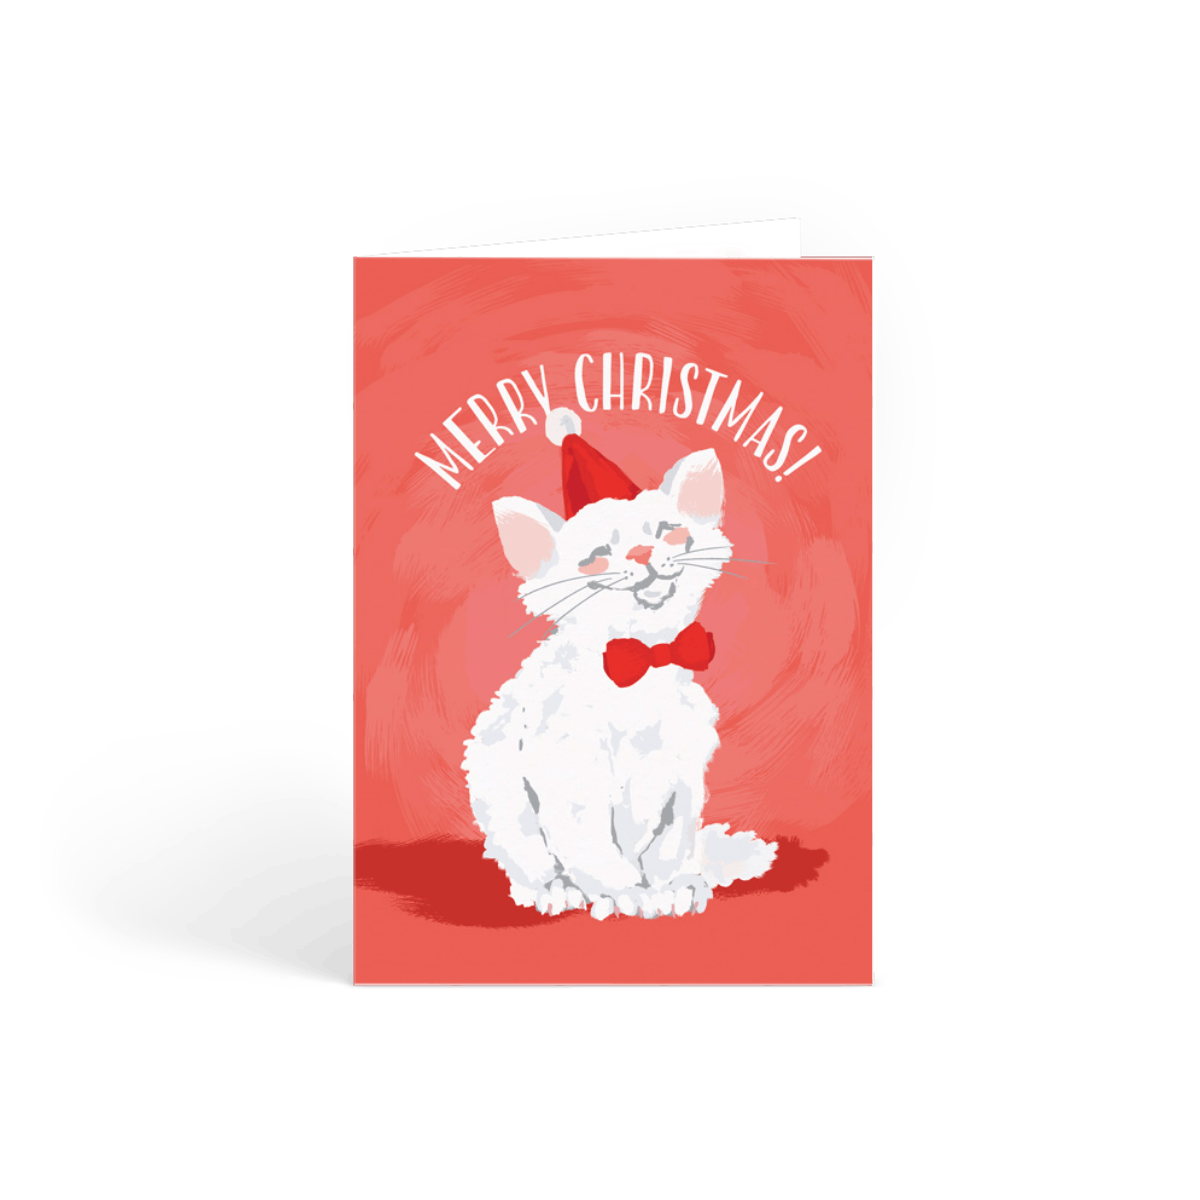 Https%3a%2f%2fwww.papier.com%2fproduct image%2f23827%2f2%2fchristmas kitten 5945 front 1497609888.png?ixlib=rb 1.1